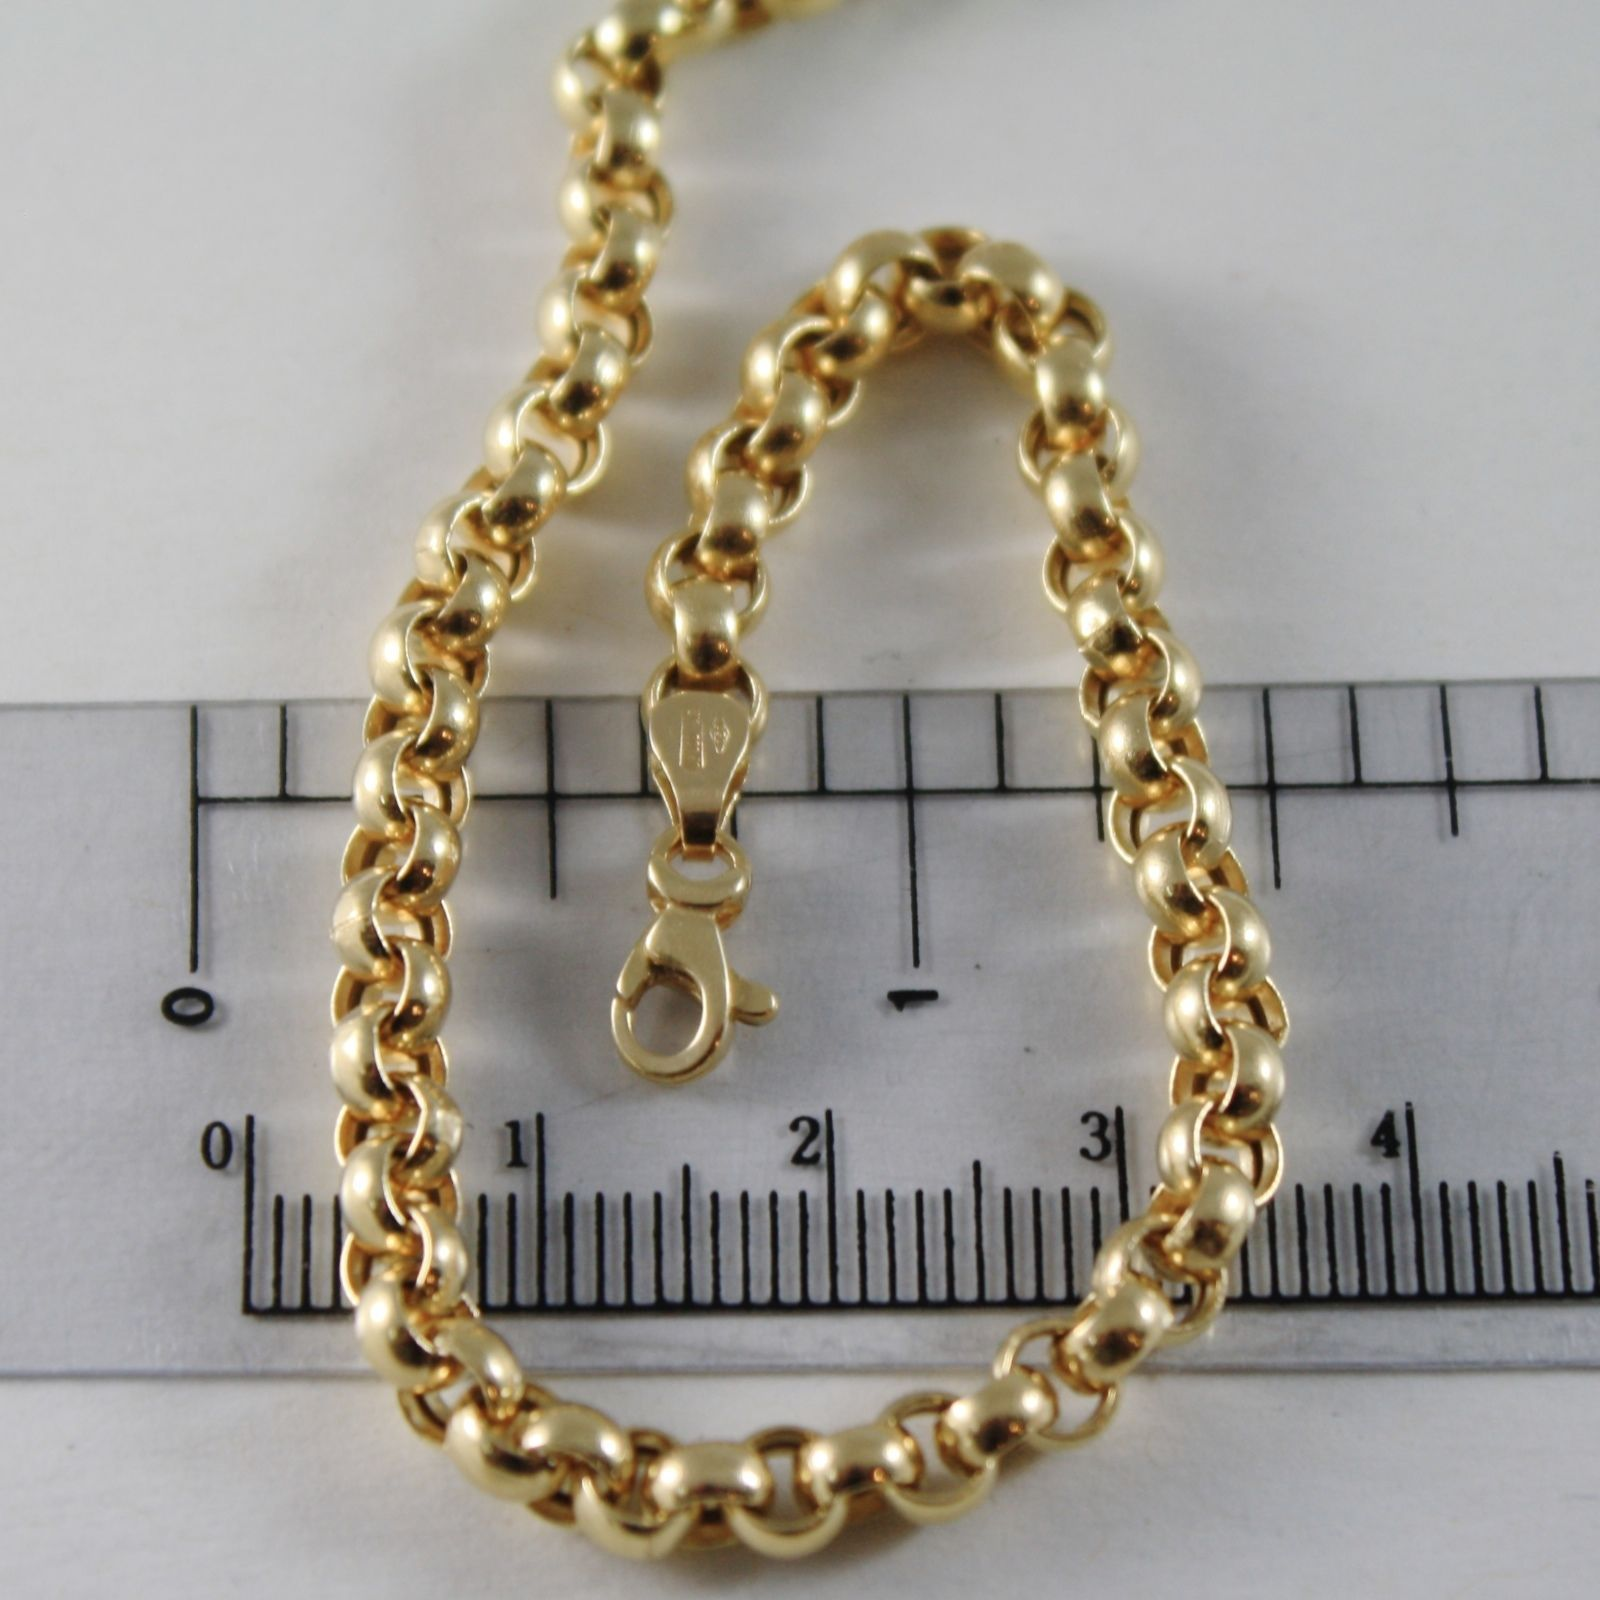 18K YELLOW GOLD CHAIN 17.70 IN, BIG ROUND CIRCLE ROLO LINK, 4 MM MADE IN ITALY